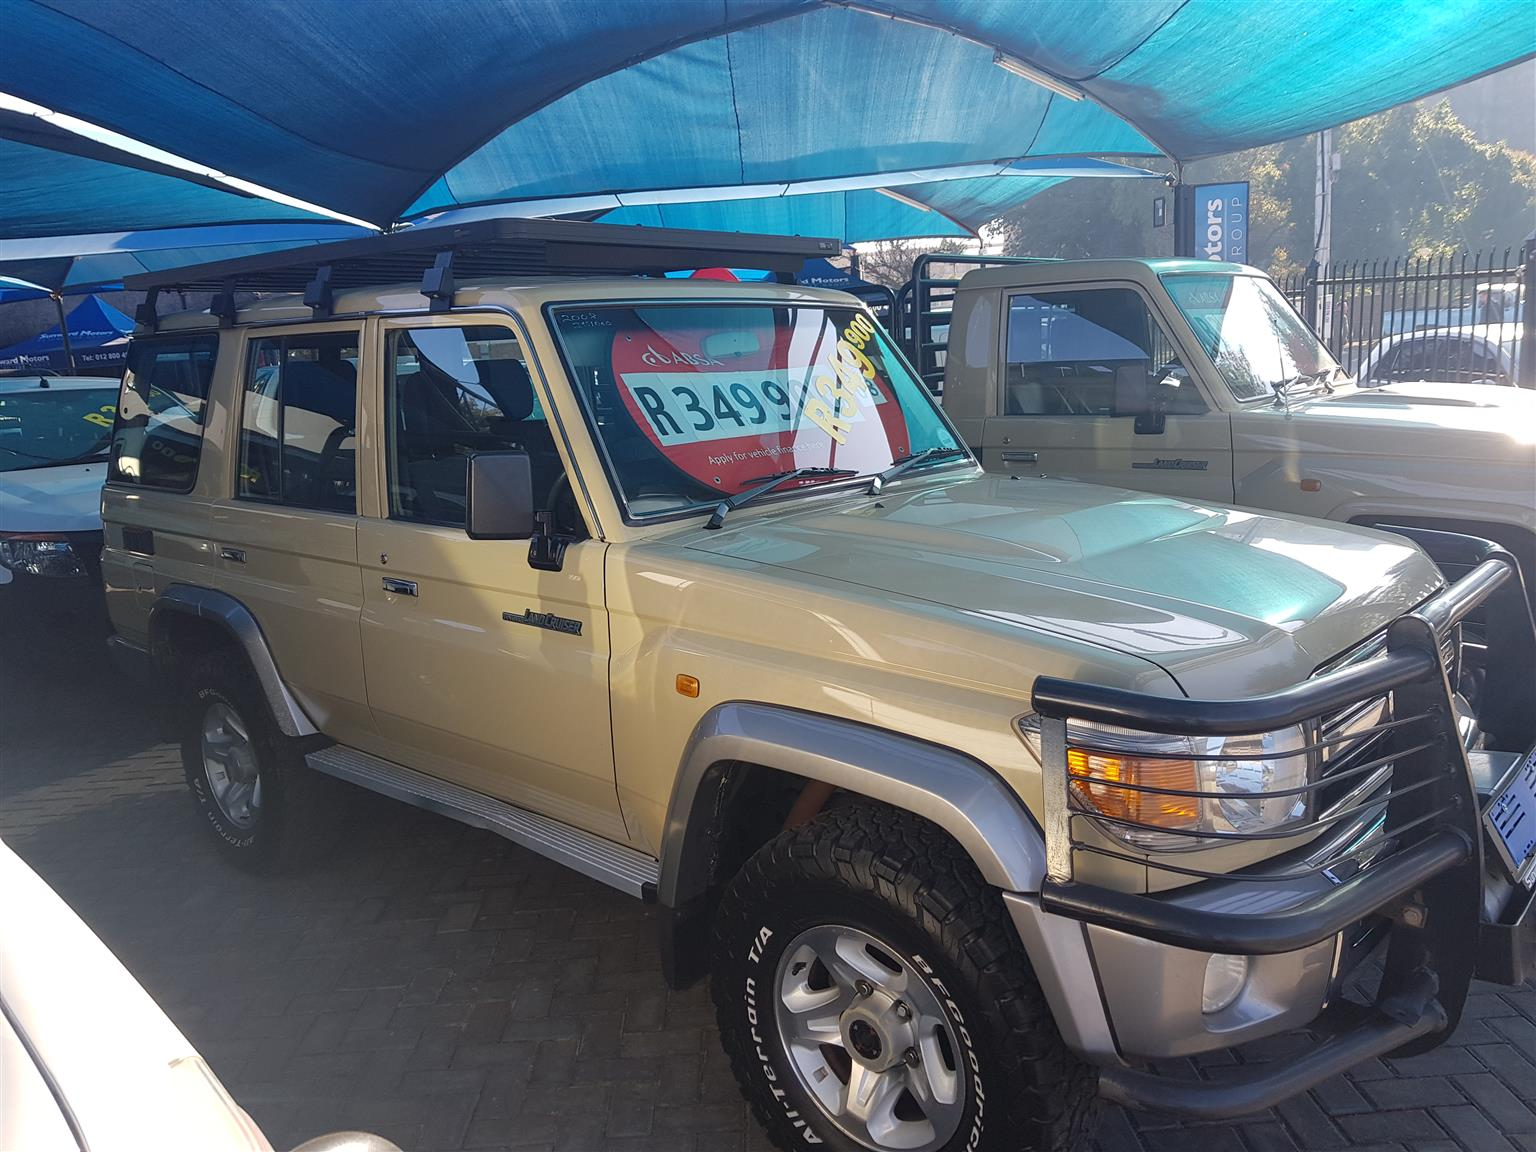 2008 Toyota Land Cruiser 70 series 4.2D